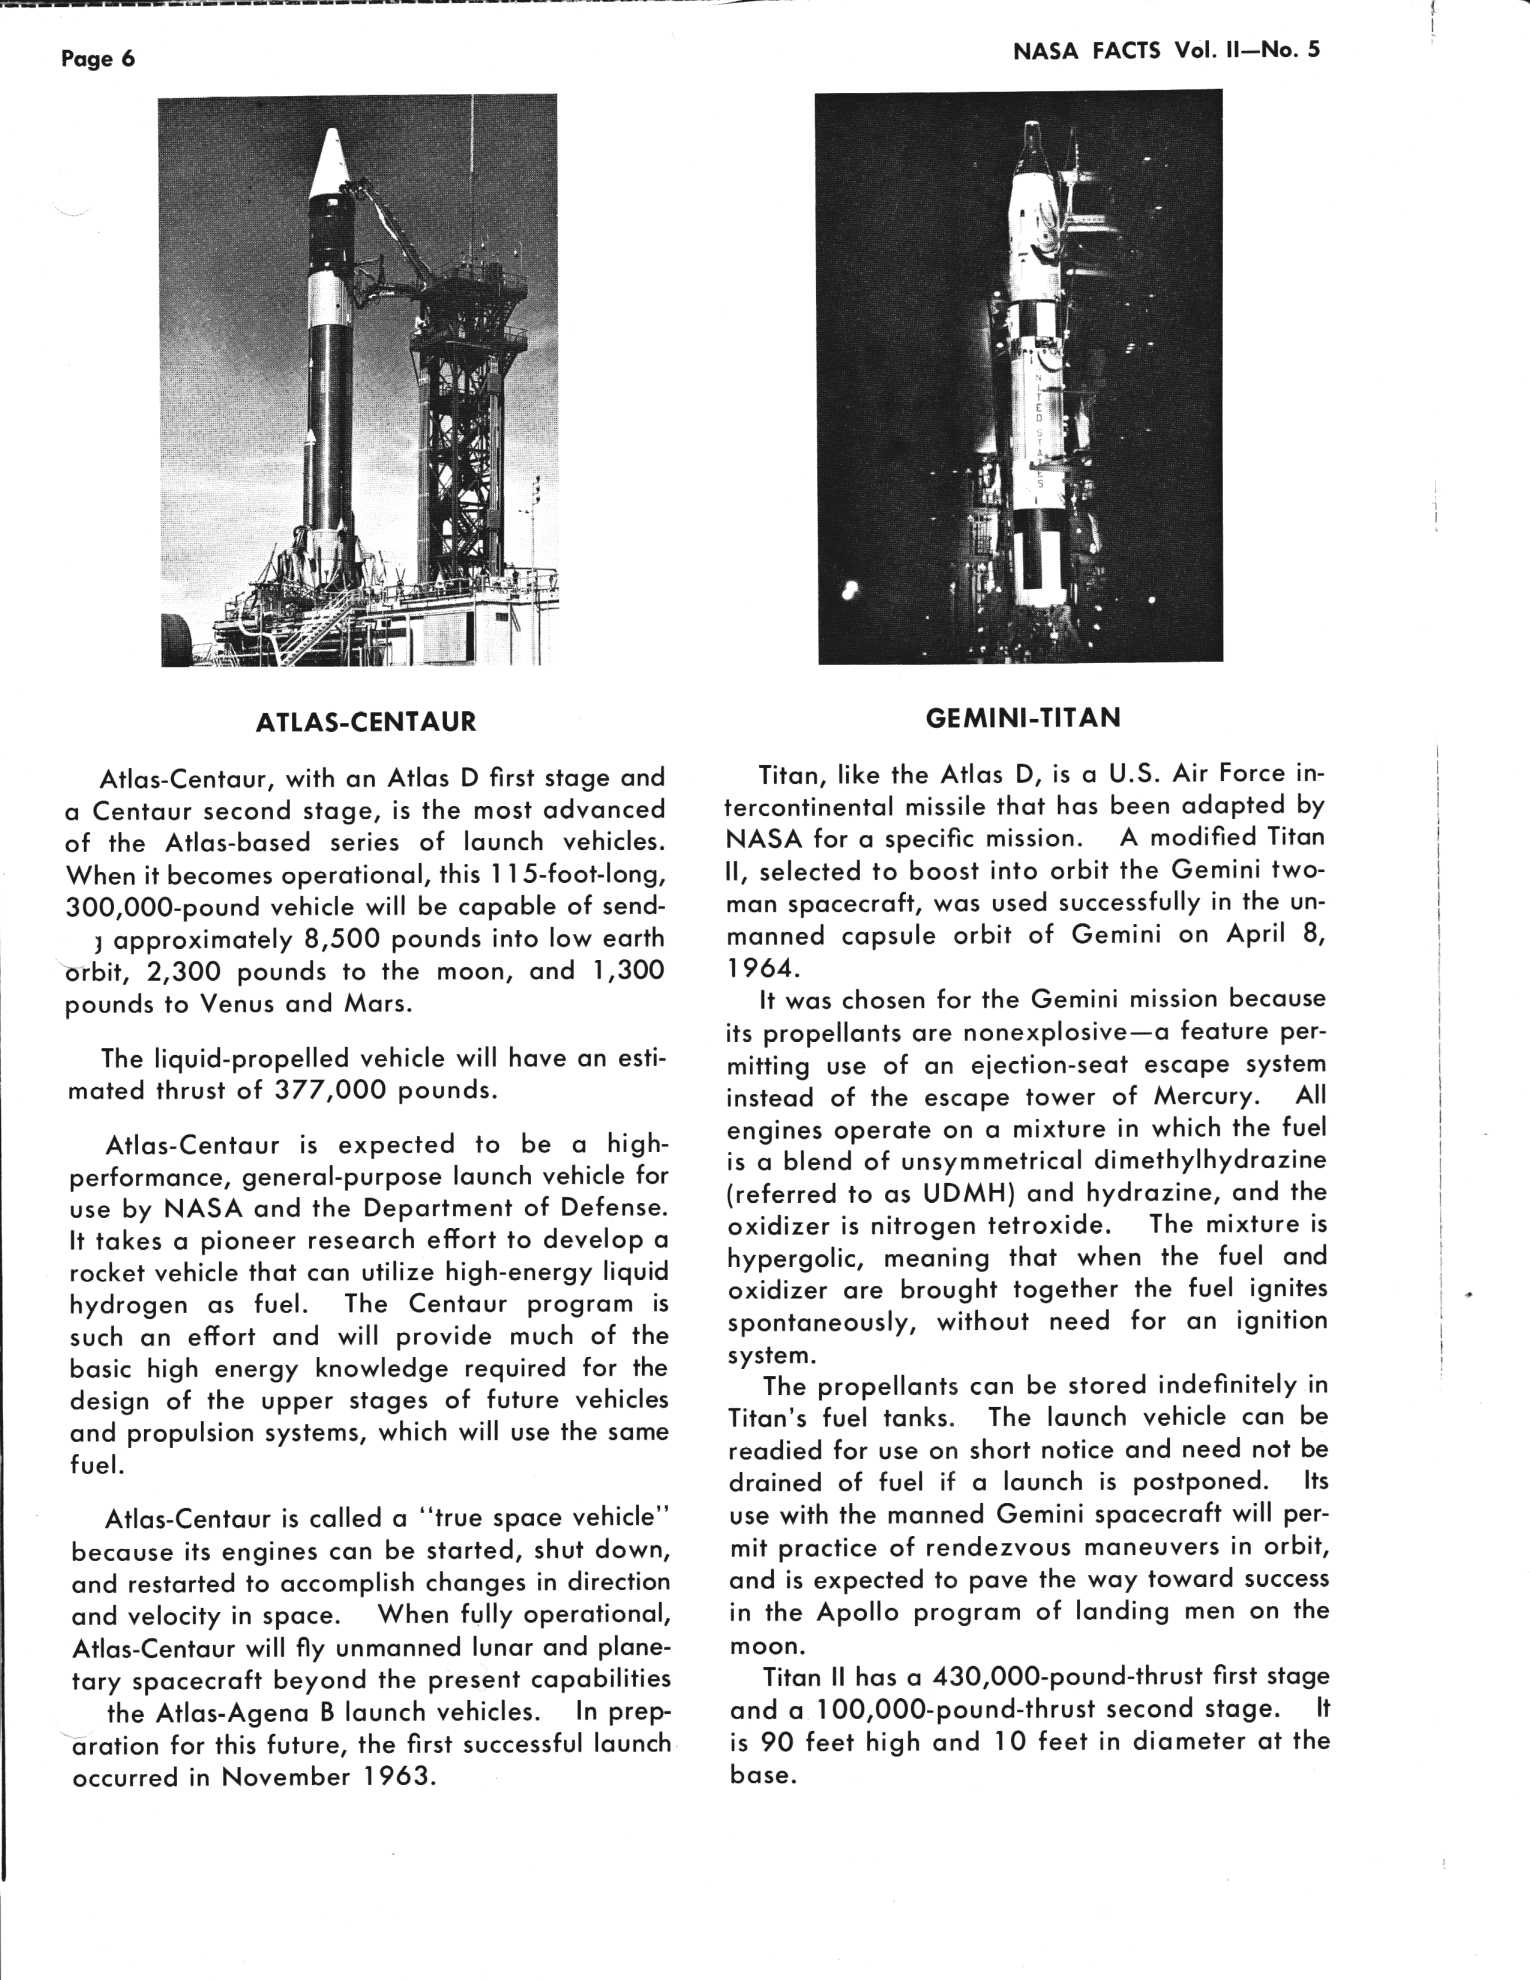 File:NASA FACTS Volume II Number 5 LAUNCH VEHICLES page 06 jpg